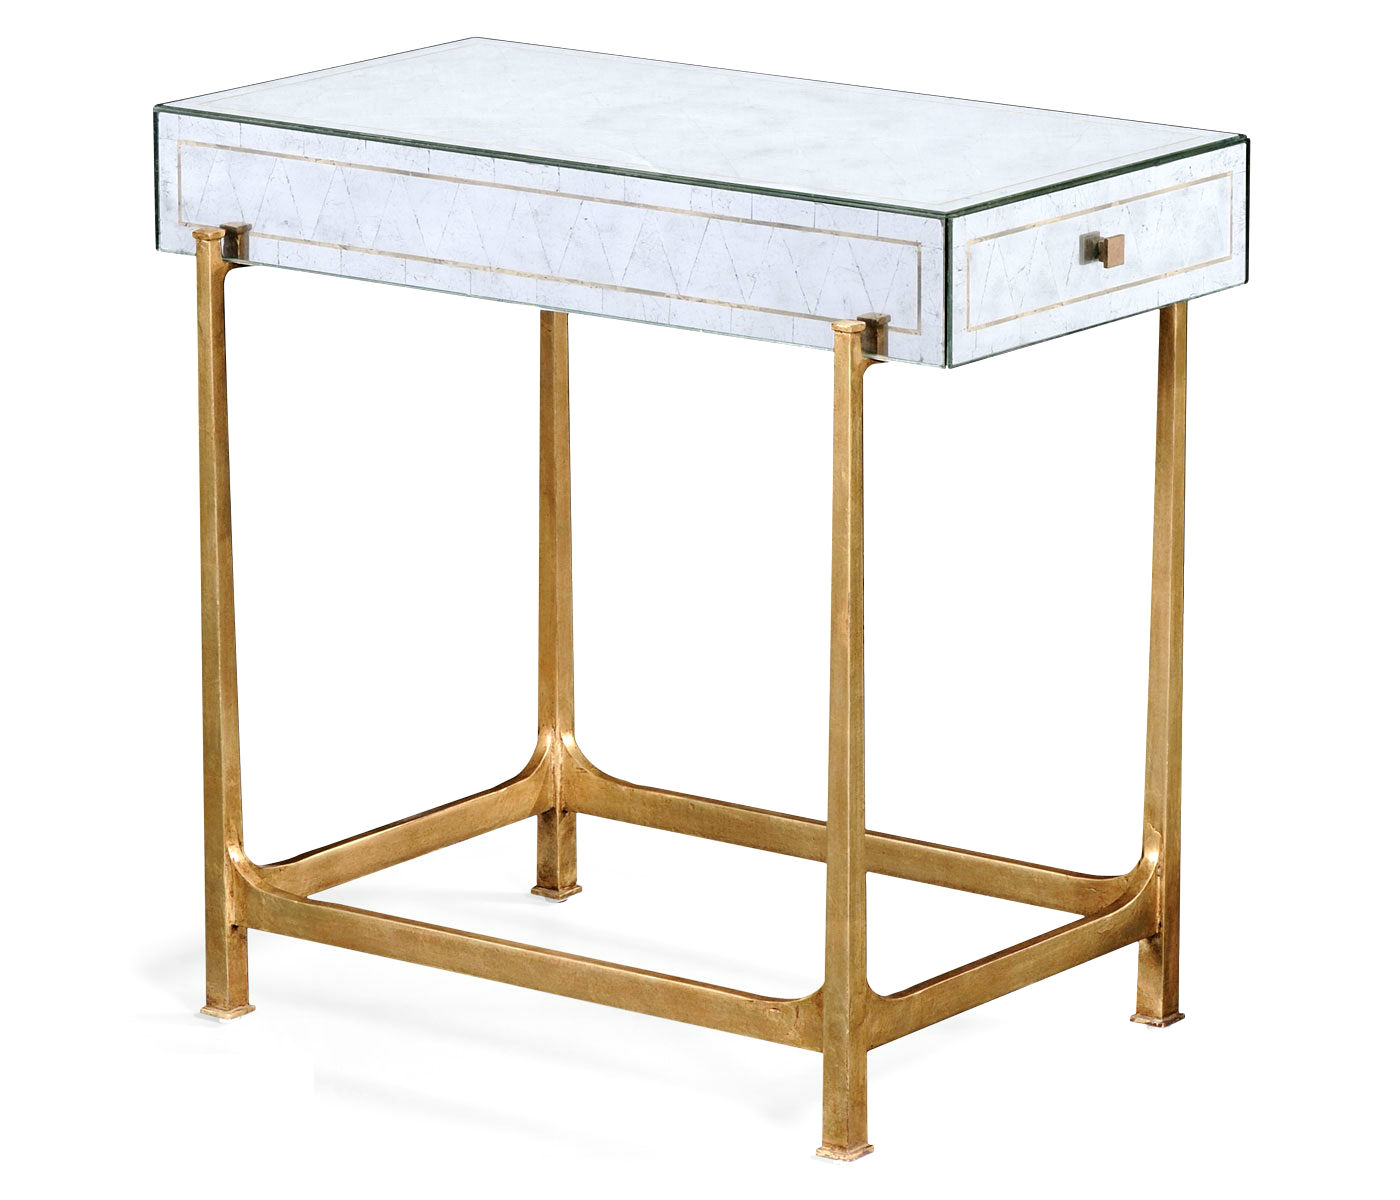 eglomise side table end accent tables tall gold elegant mirrored distressed gilded partner coffee console available hospitality residential bar height legs butterfly tiffany lamp